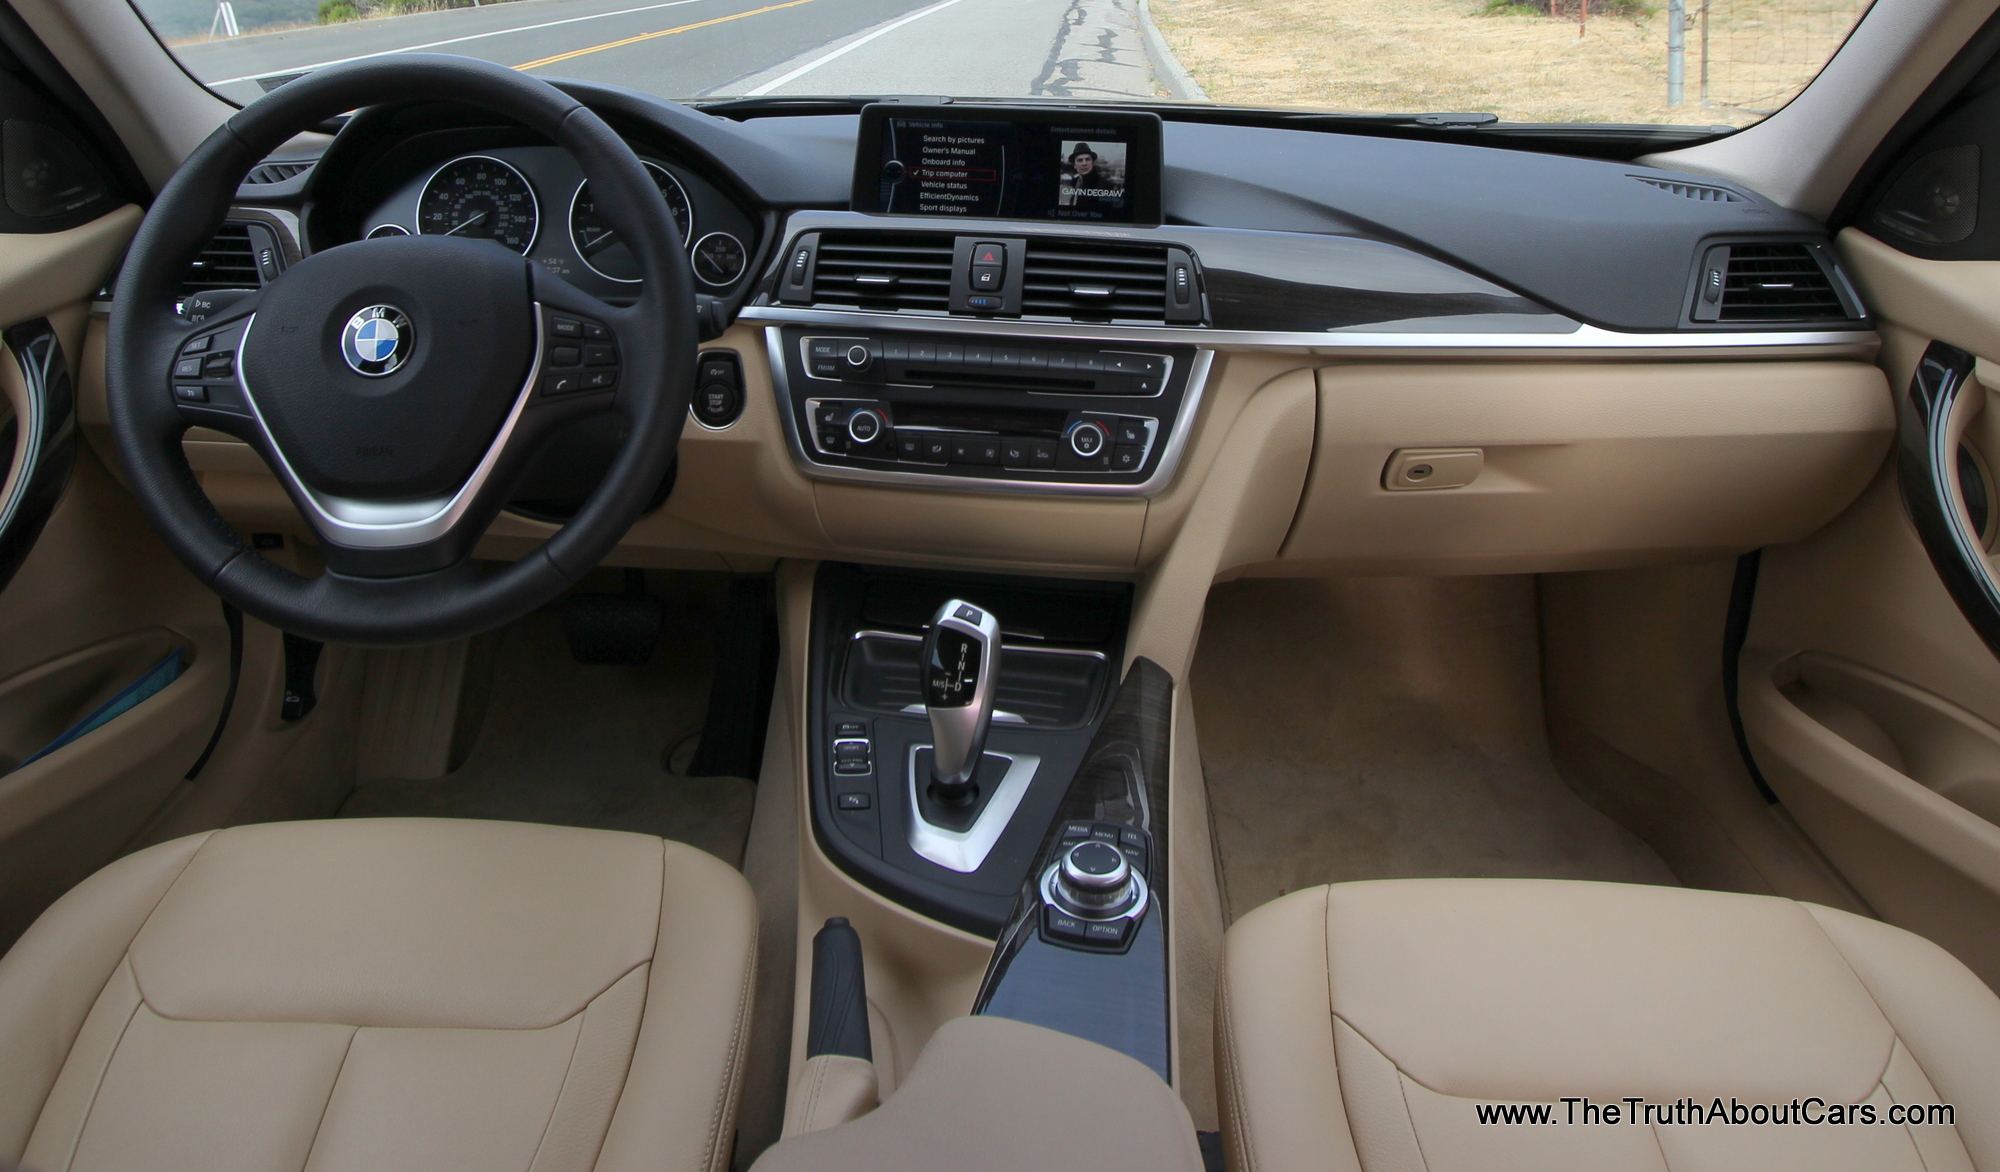 Review: 2012 BMW 328i Luxury Take Two - The Truth About Cars